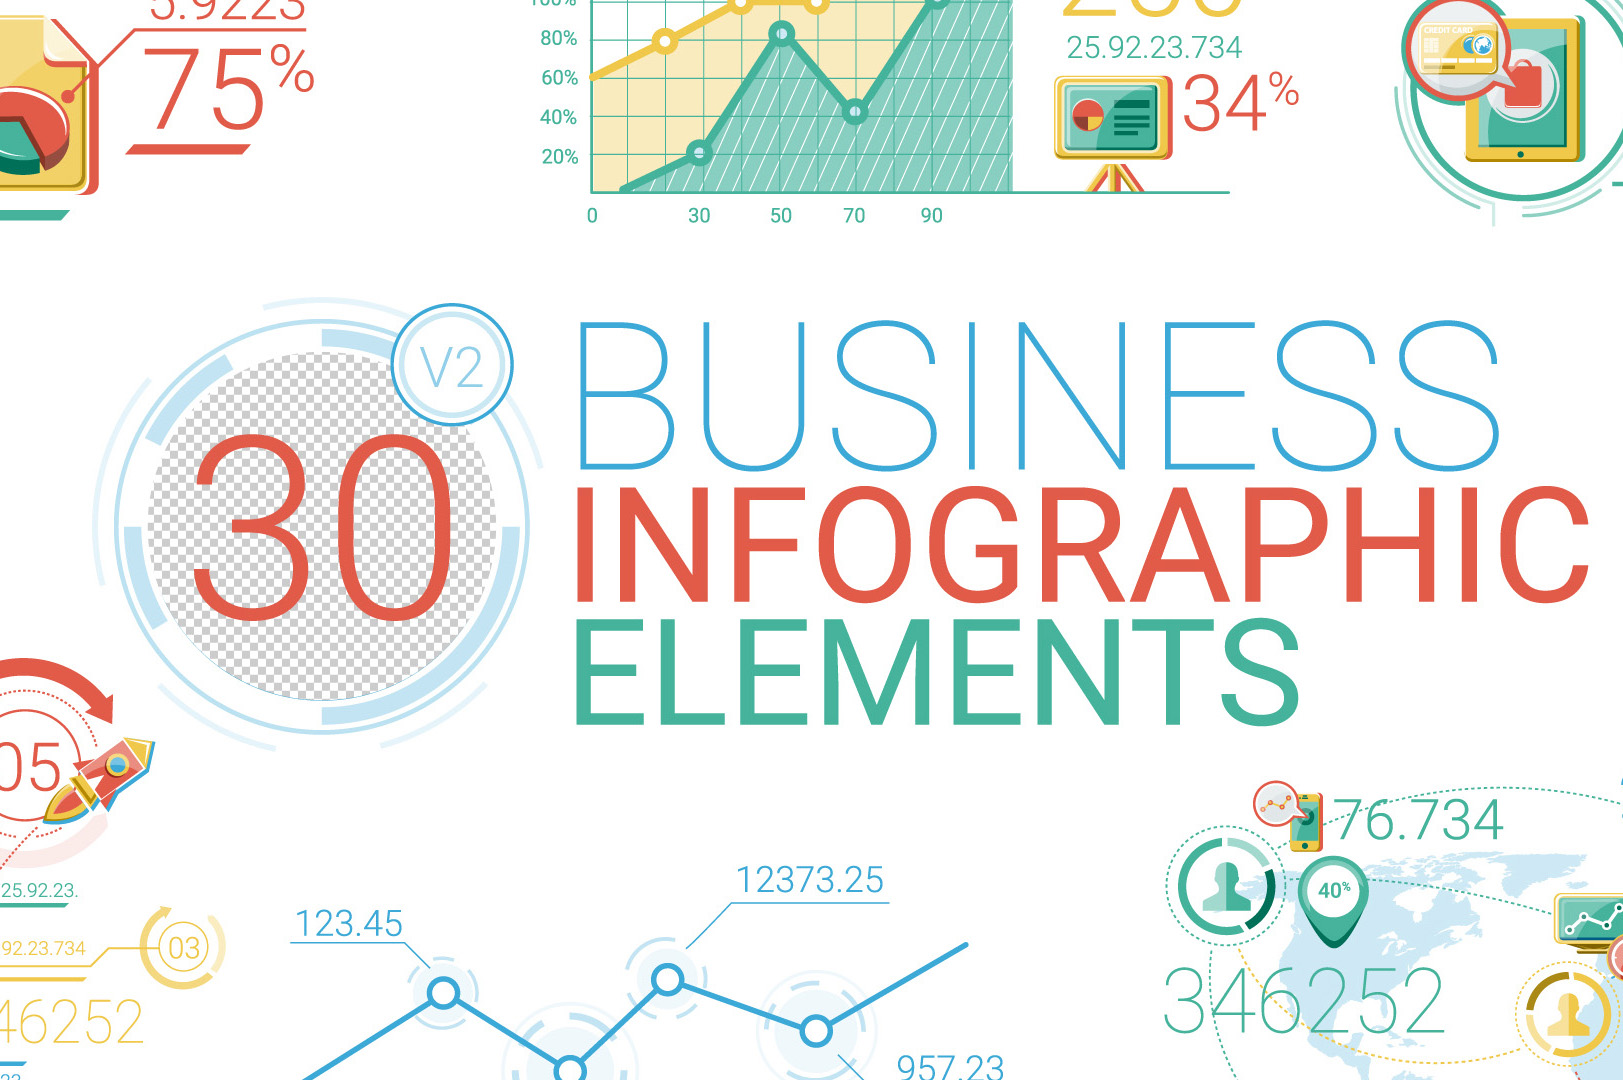 Business Infographic Elements for After Effects - Concept Cafe